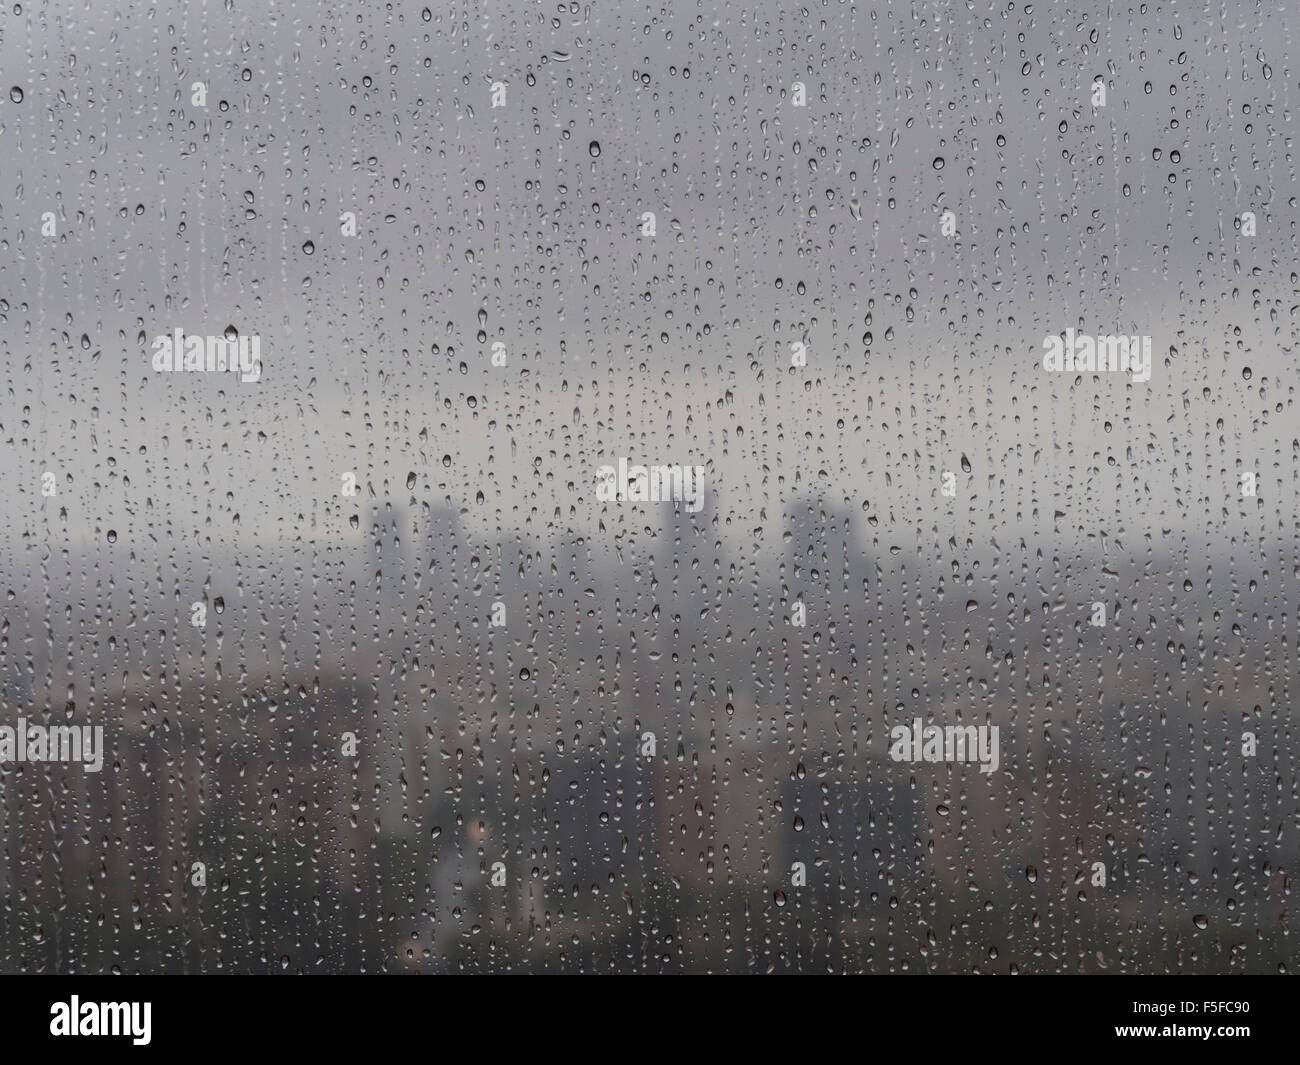 After heavy rainfall, the diffuse skyline of Barcelona is emerging in the twilight behind raindrops on a window. Stock Photo